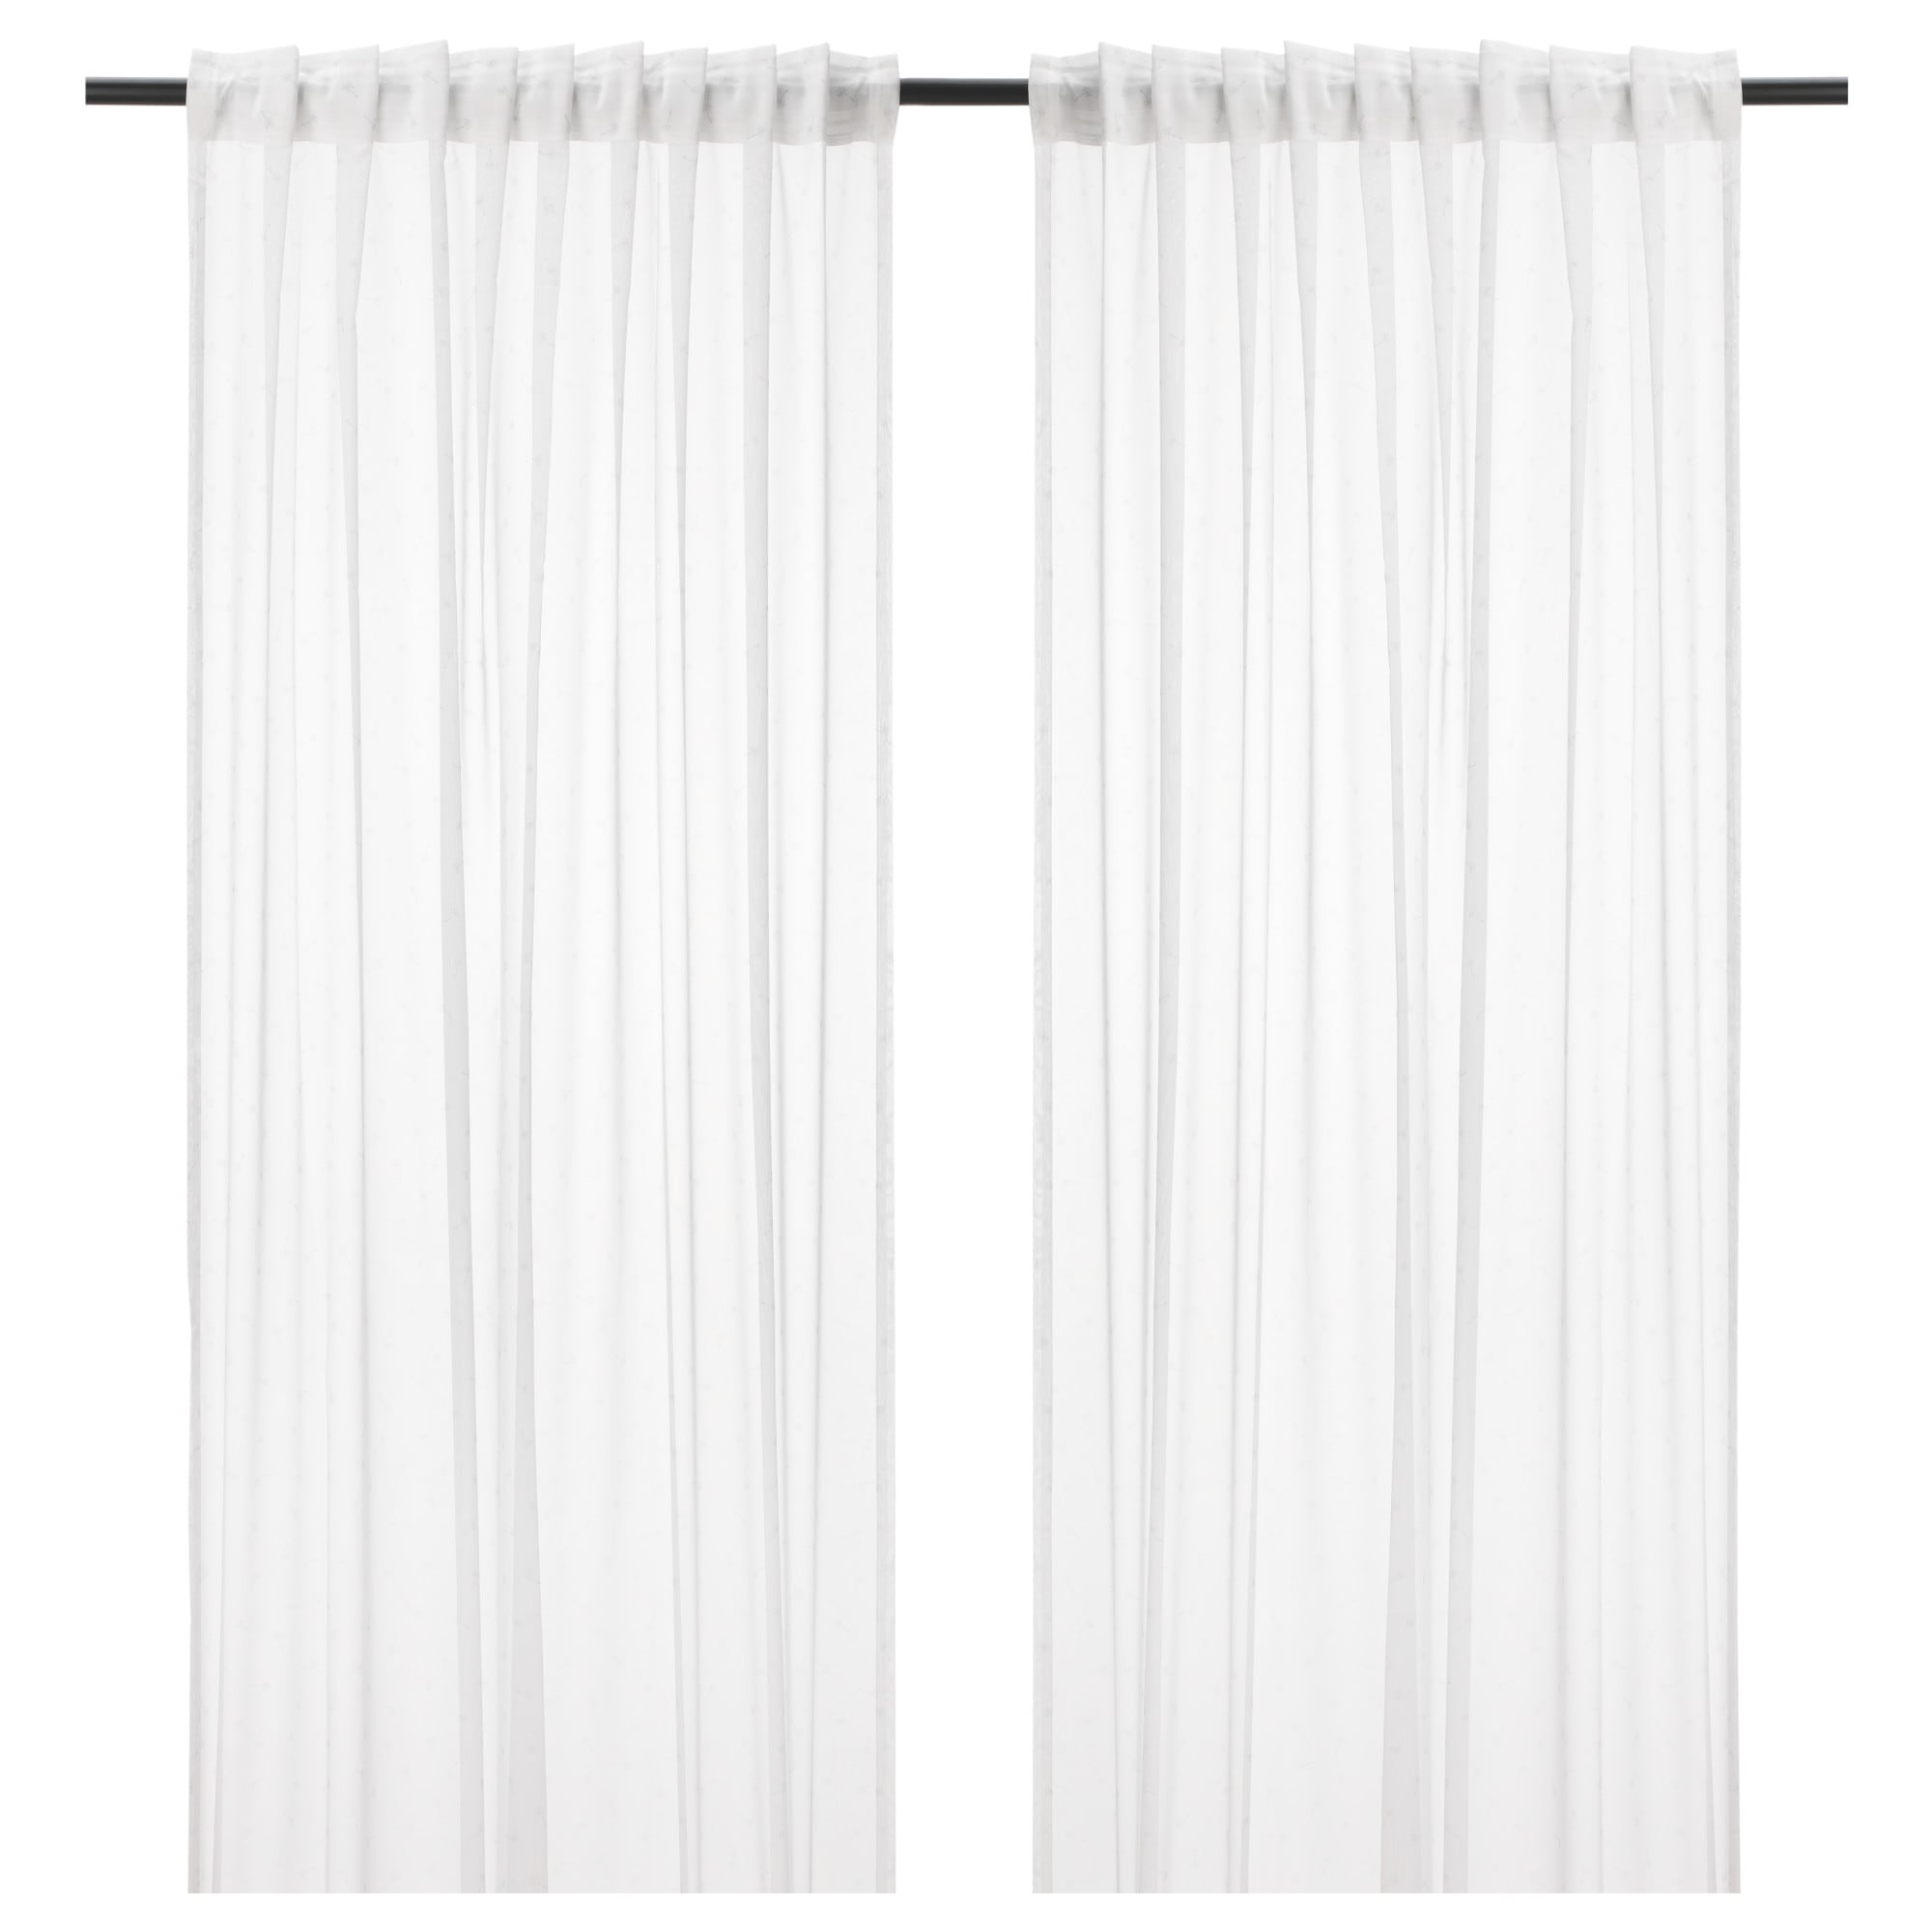 Emmylina Sheer Curtains 1 Pair White Flowers Length 98 Width